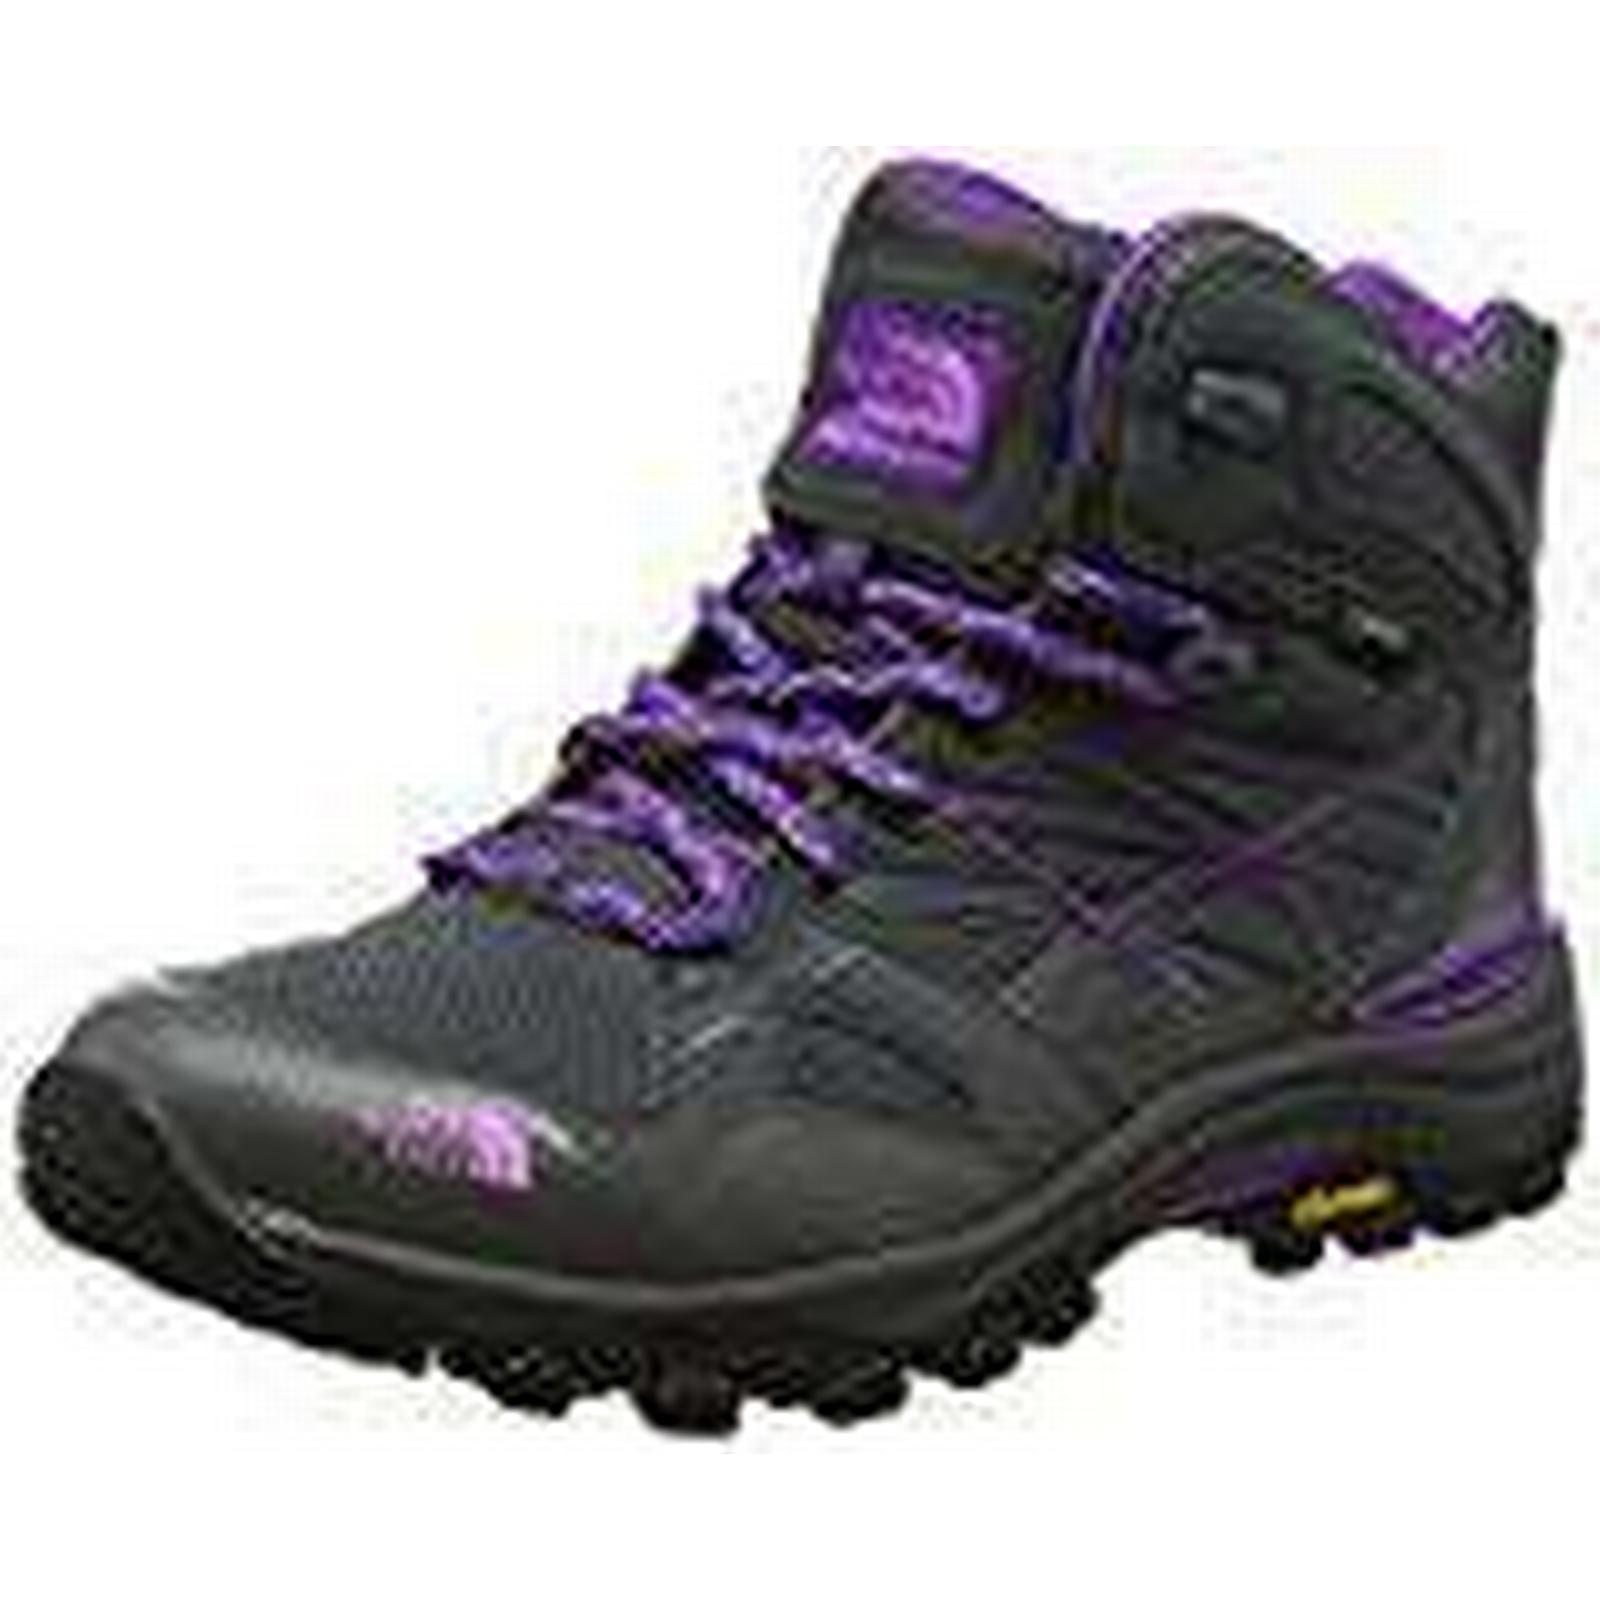 THE NORTH FACE Women's Hedgehog Rise Fastpack Mid GTX High Rise Hedgehog Hiking Boots, (Dark Shadow Grey/Violet Tulle TCR), 9 (42 EU) 317361